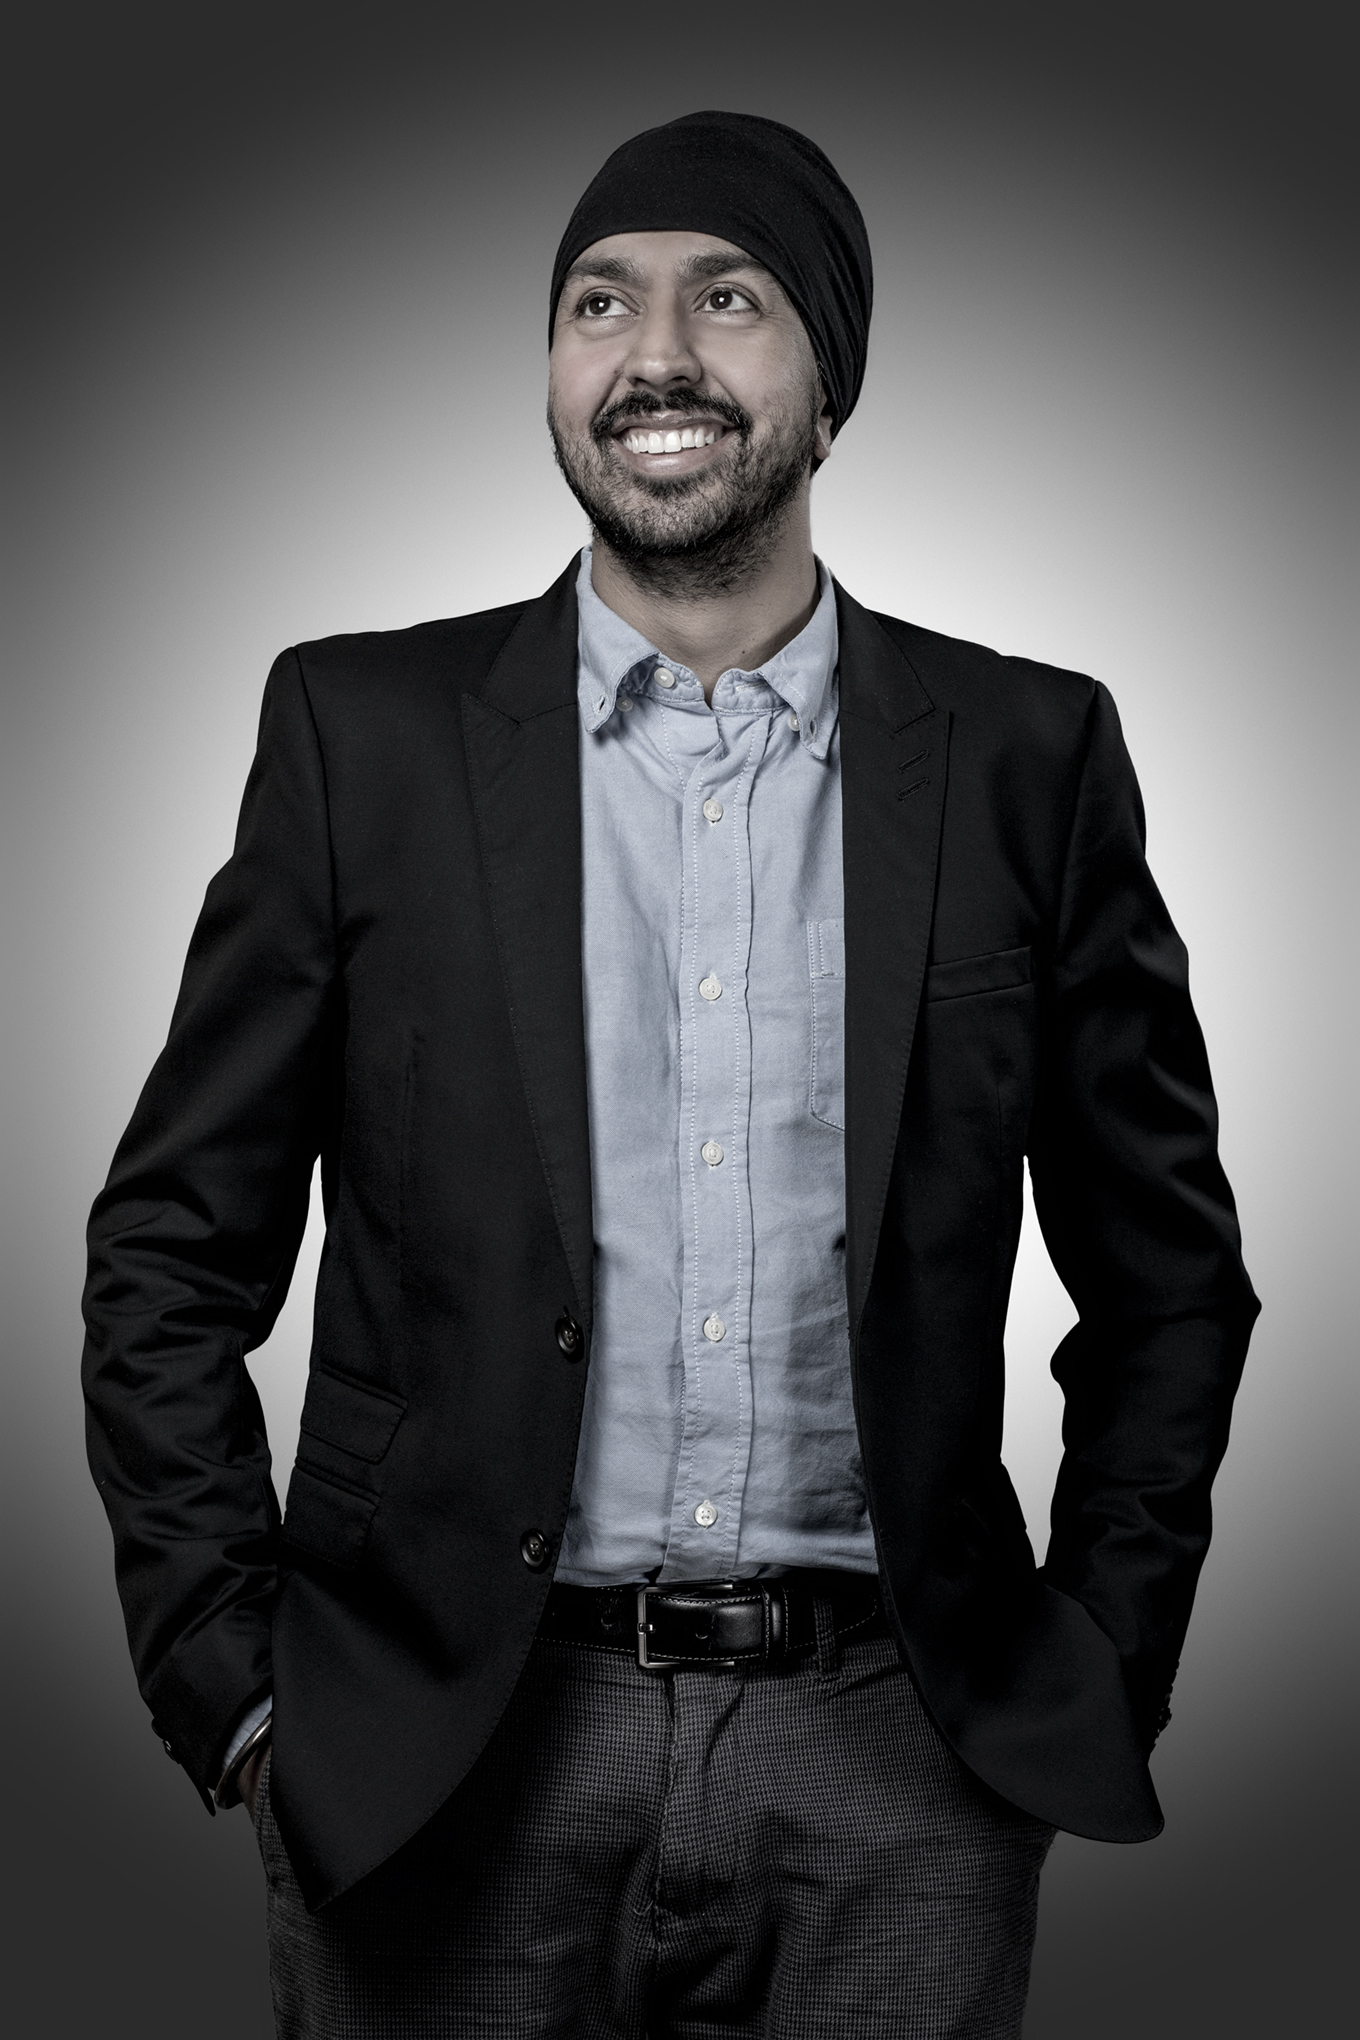 Casual business portrait of man in front of graduated grey background